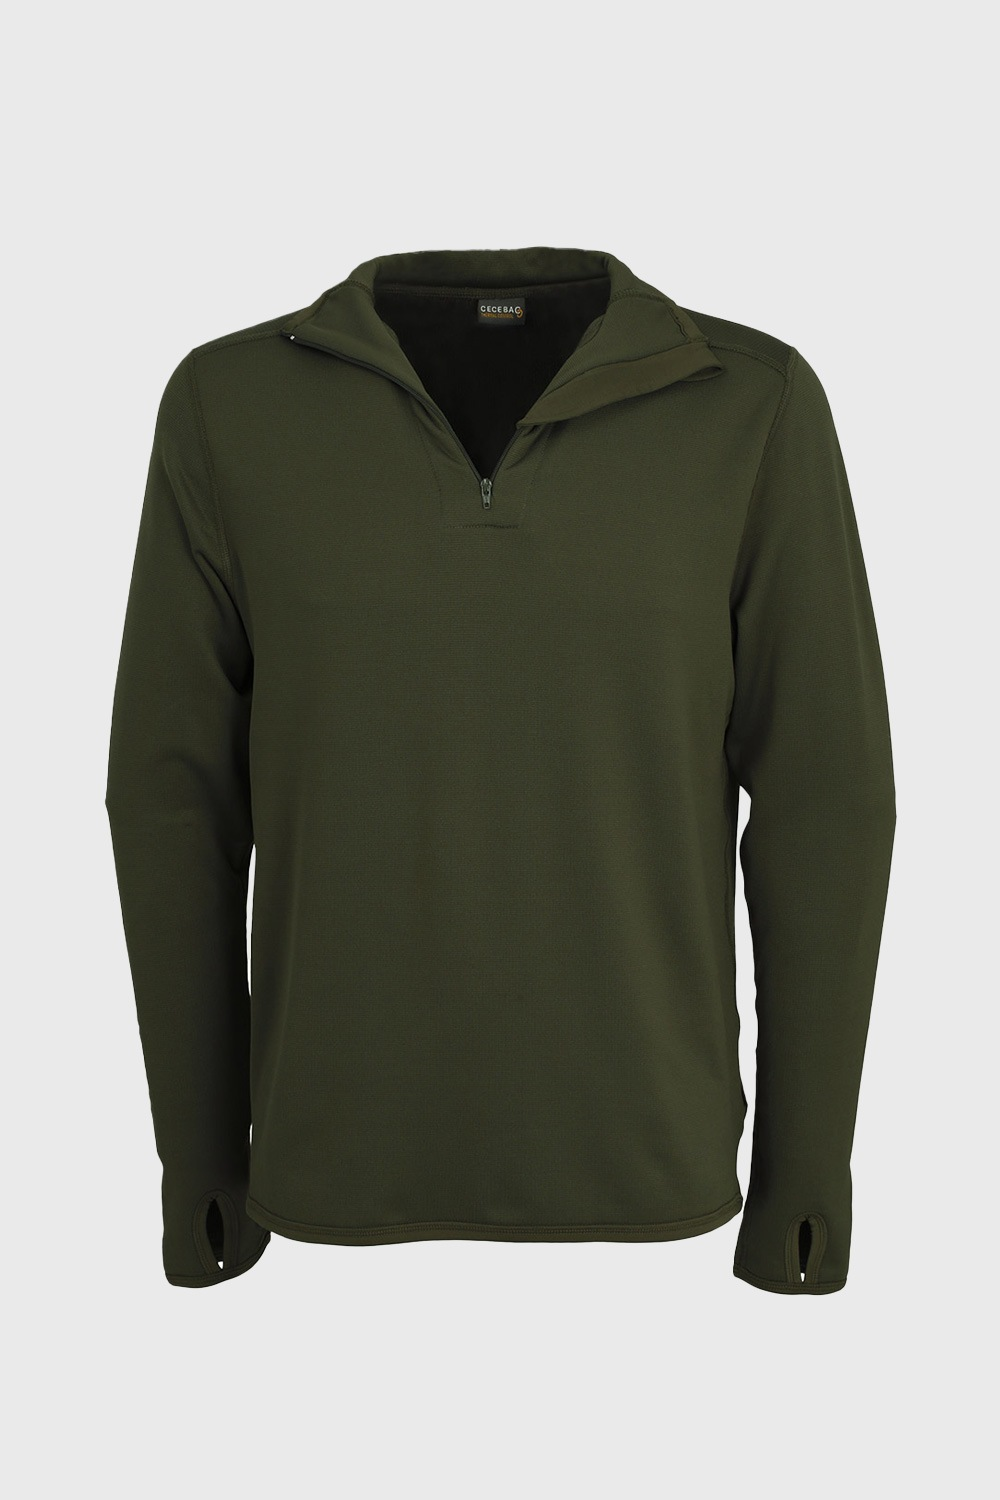 Extreme Functional Longsleeve in Olive imagine